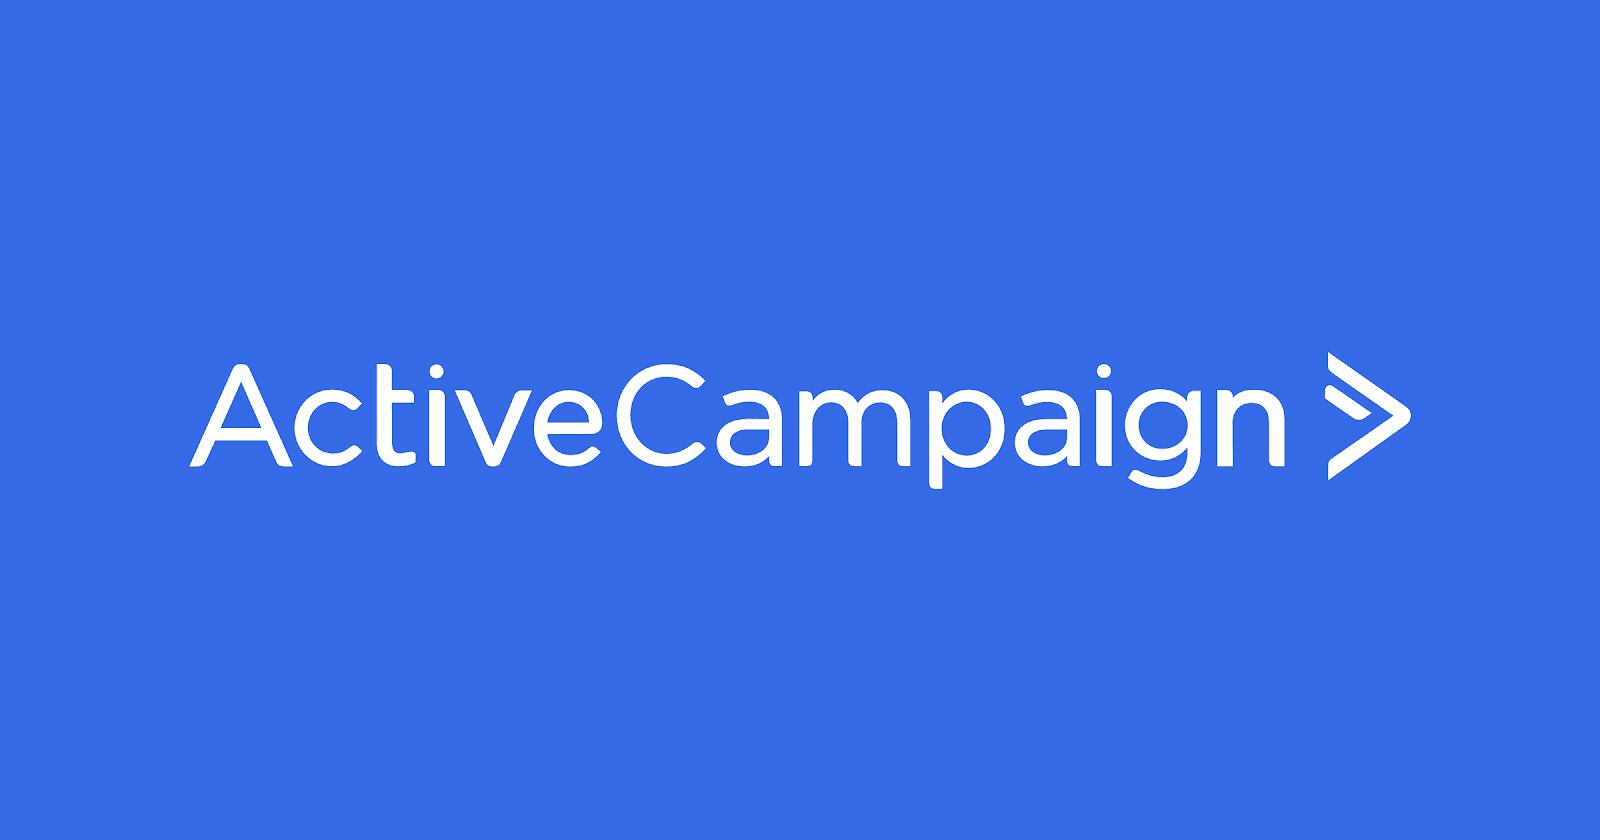 ActiveCampaign logo in blue background is part of the ActiveCampaign vs GetResponse shootout